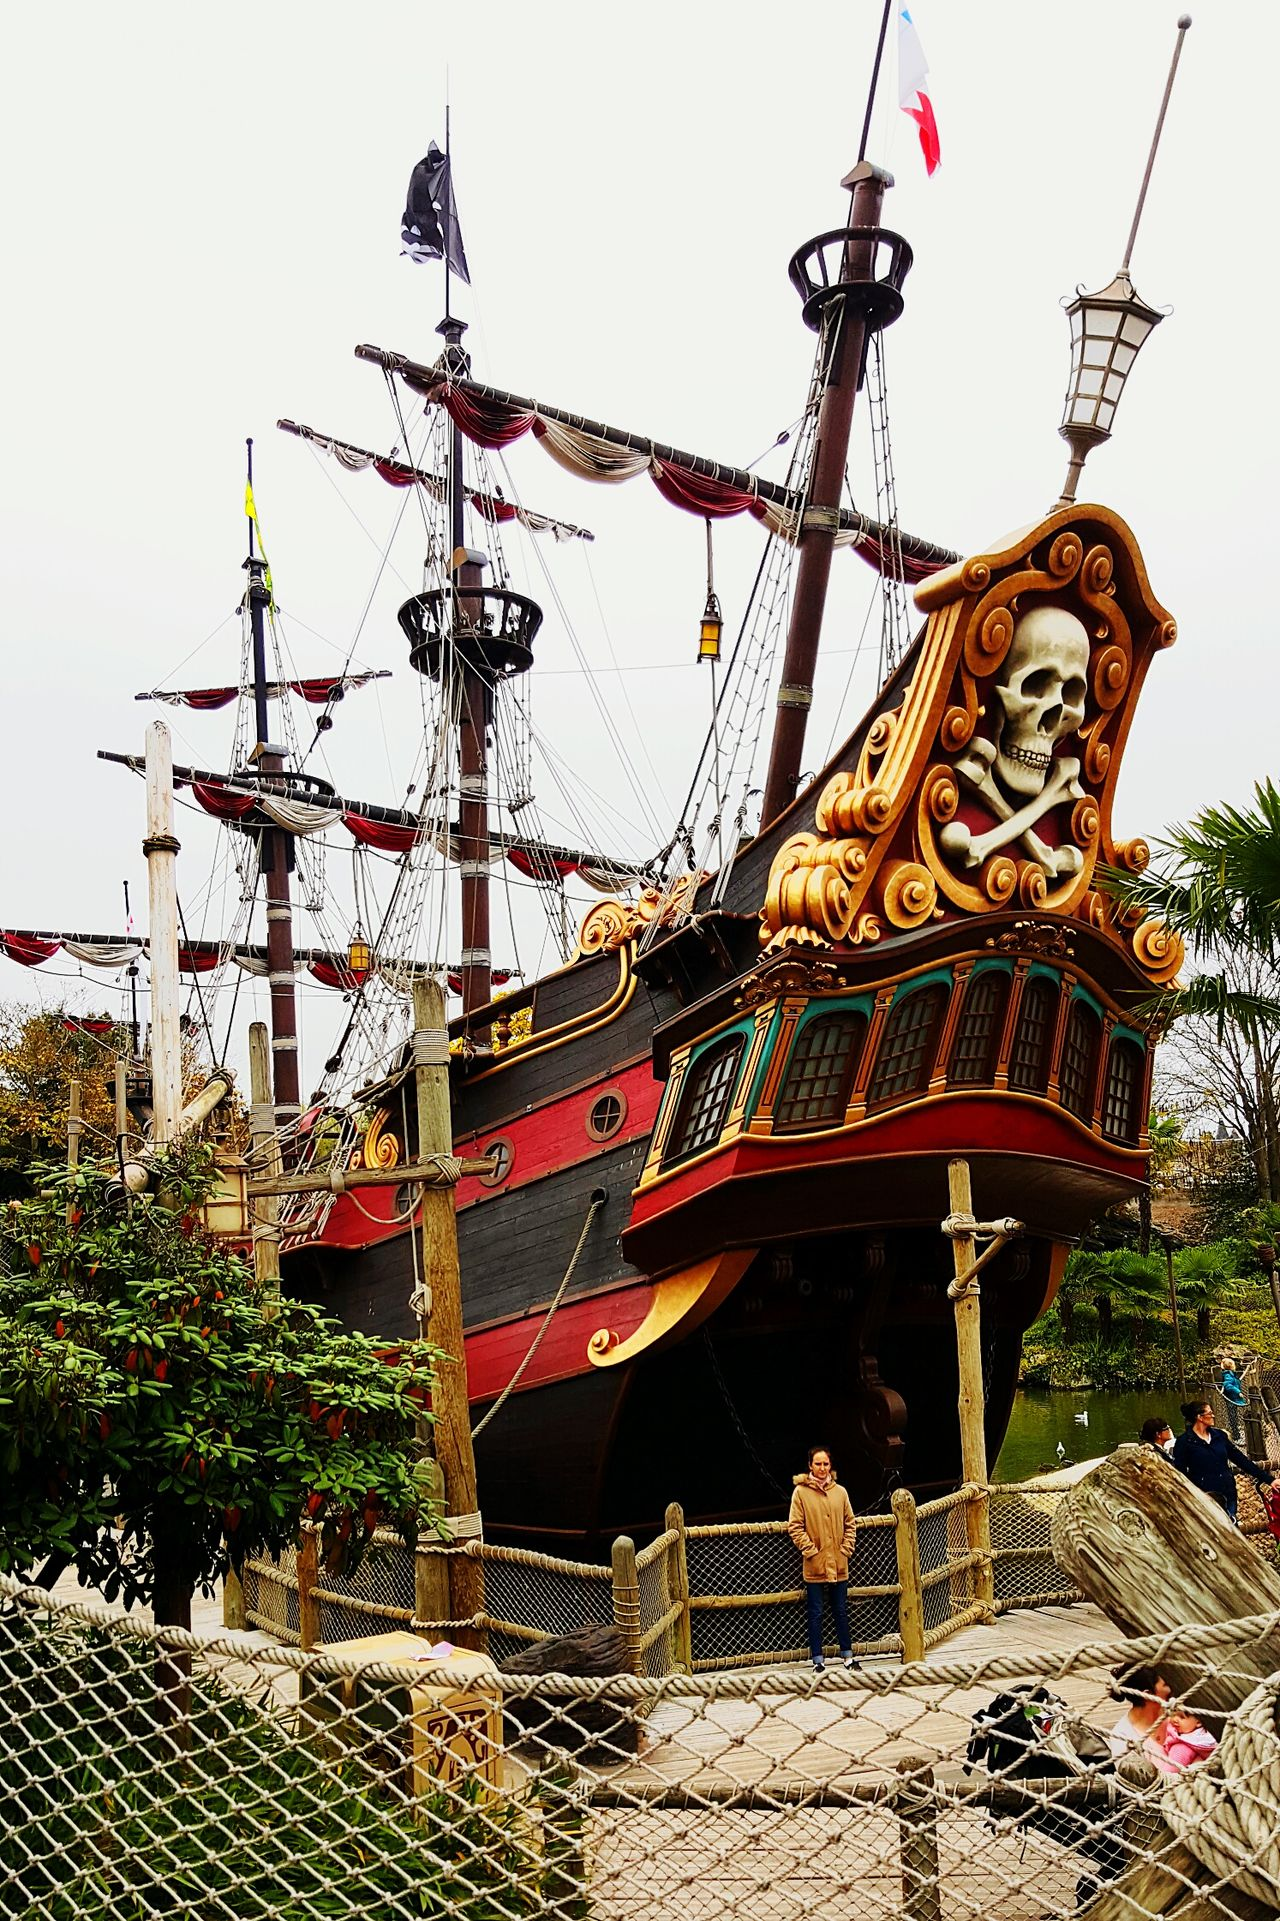 Low Angle View Built Structure Sky Architecture Outdoors Day Ships⚓️⛵️🚢 Ship Pirateship  Pirate Disneyland Disney Disneyland Paris